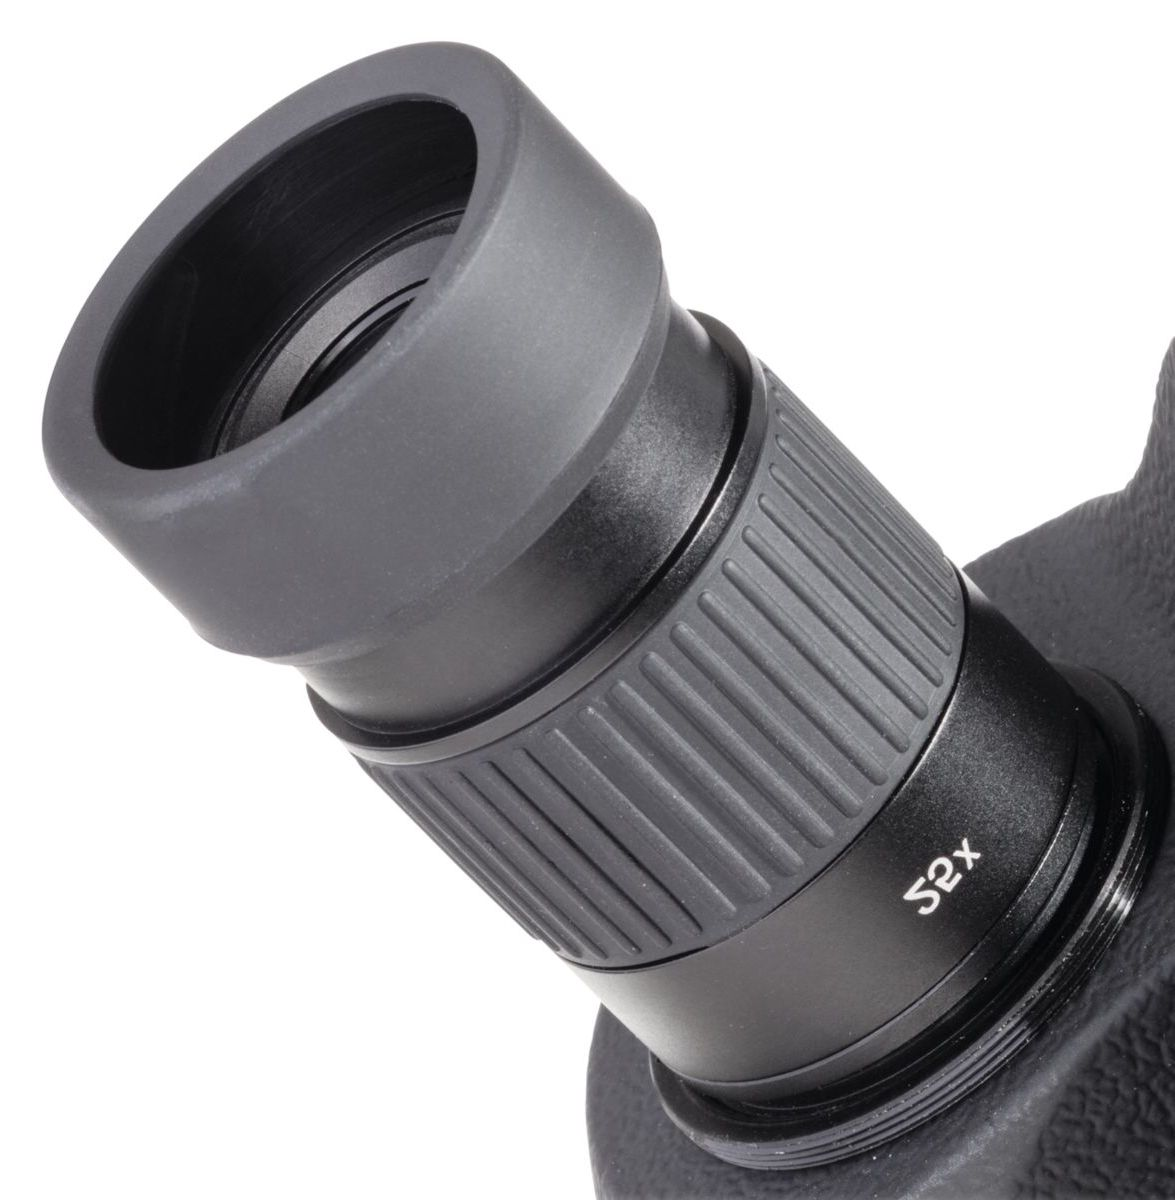 Pursuit® X1 Compact Spotting Scope